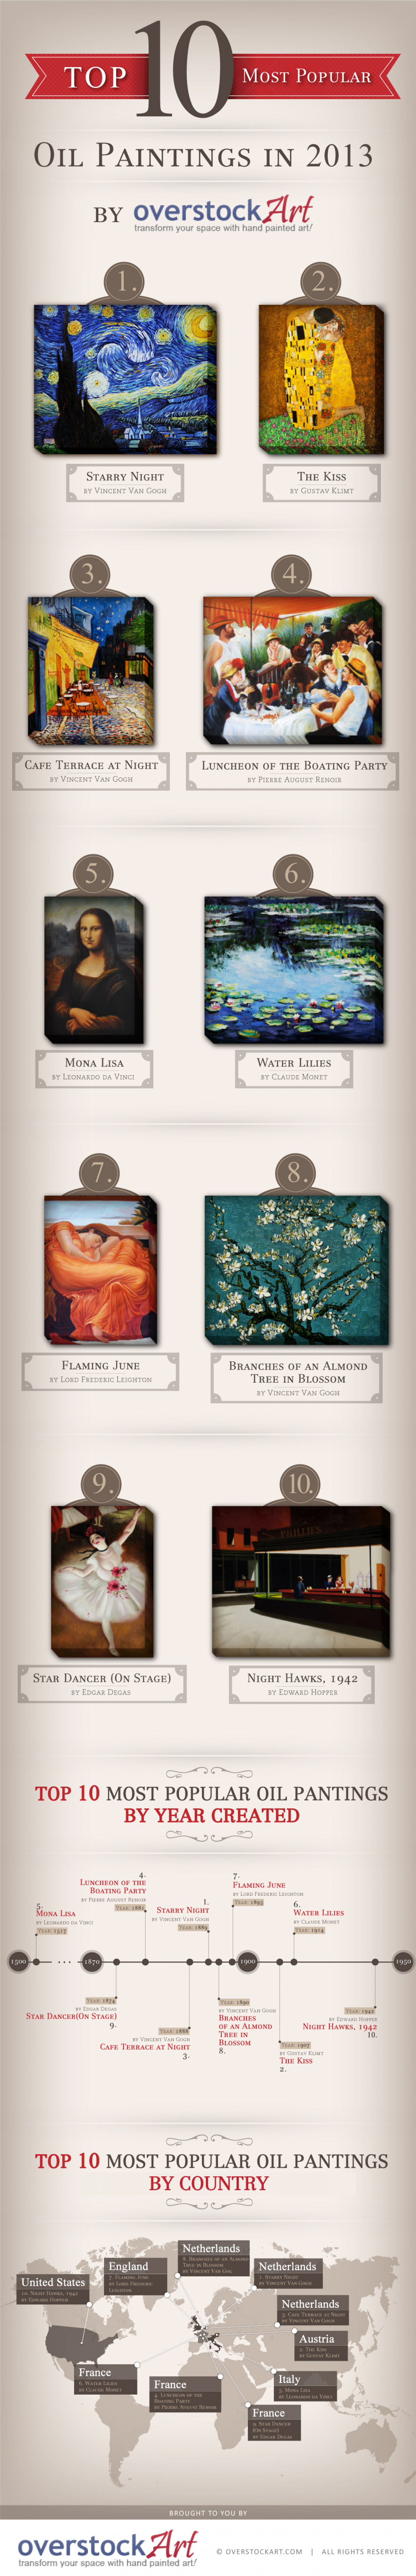 Top 10 Most Popular Oil Paintings for 2013 Infographic